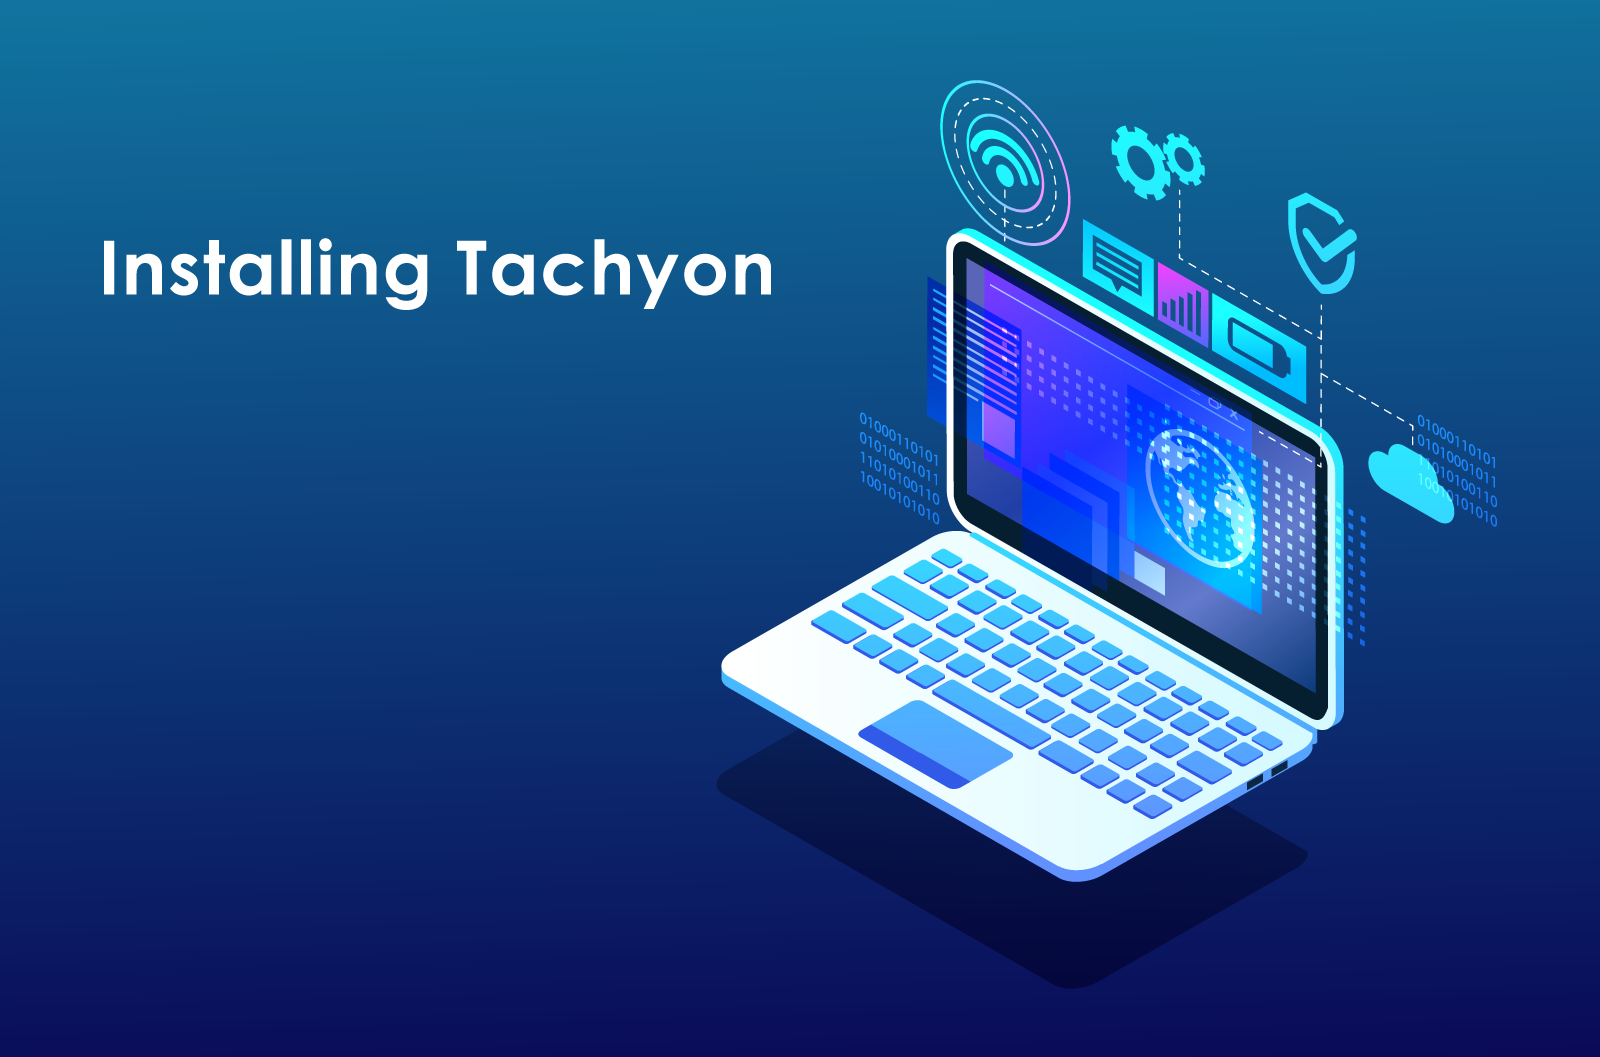 Installing Tachyon (In-Memory-File-System) As A Cluster